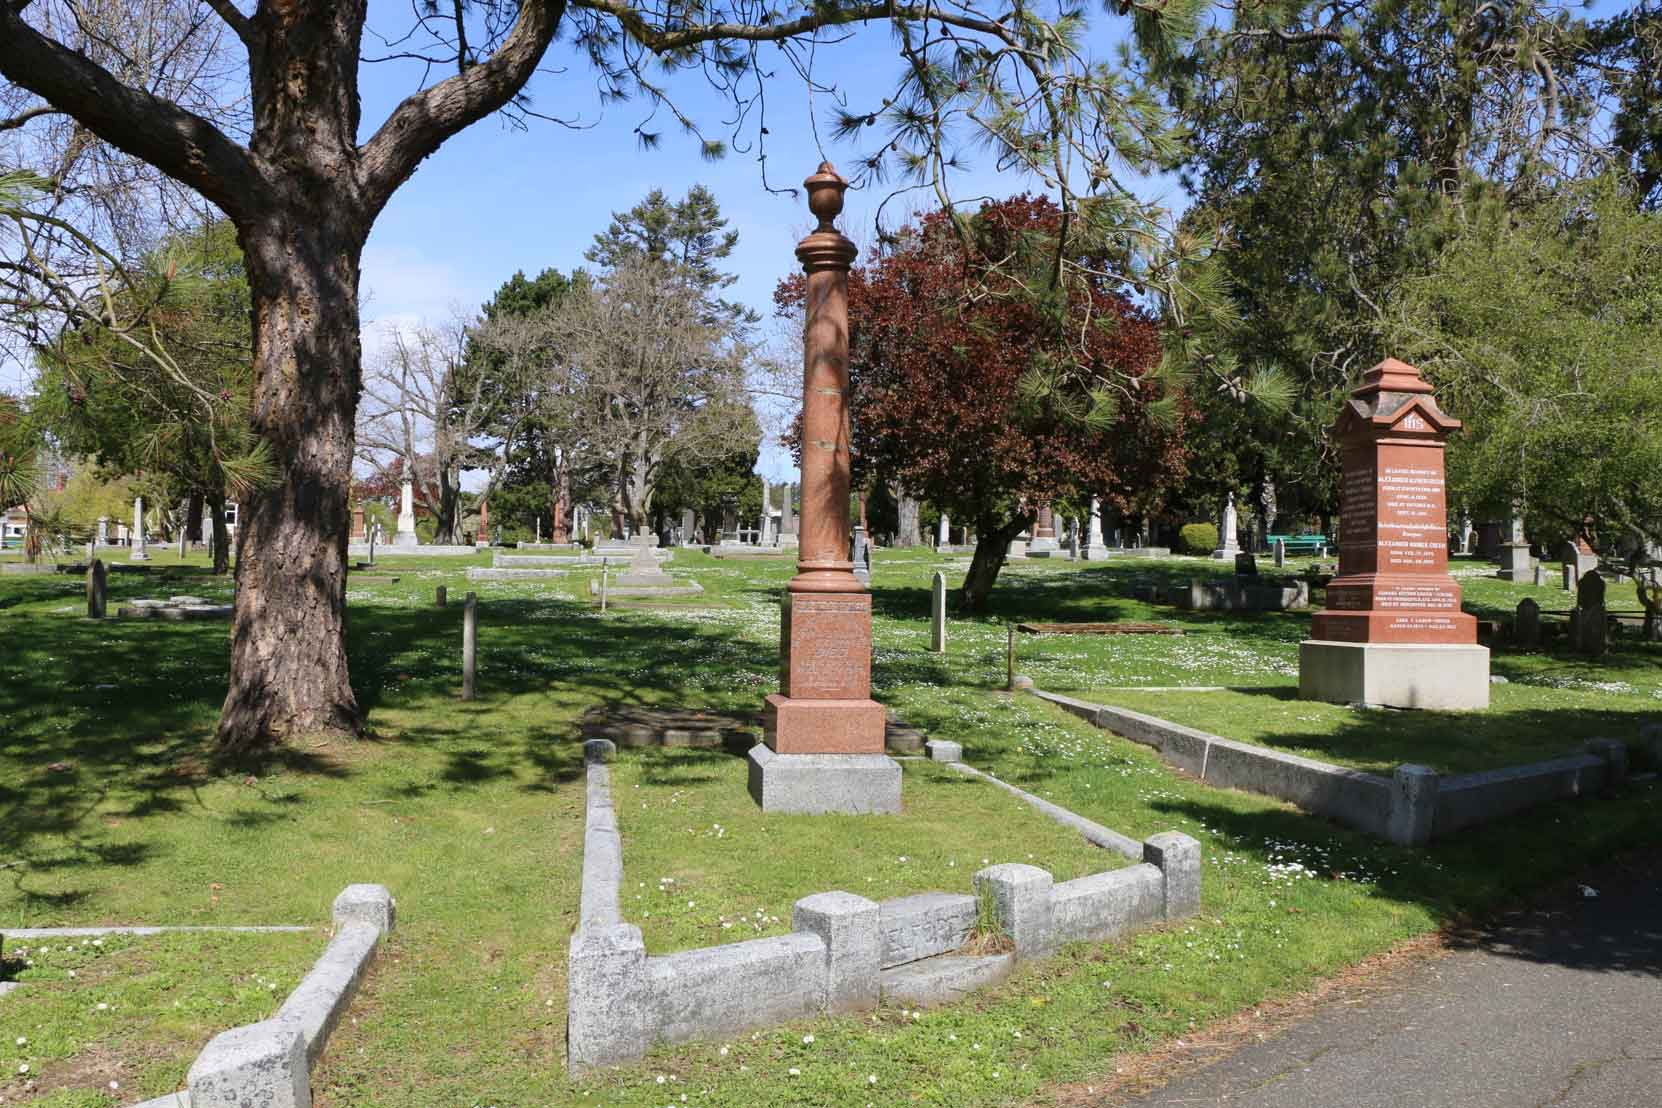 John Pitcairn Elford grave, Ross Bay Cemetery, Victoria, BC. The grave of Alexander Alfred Green is on the right and the grave of Thomas Trounce is on the left. (photo by Temple Lodge No. 33 Historian)